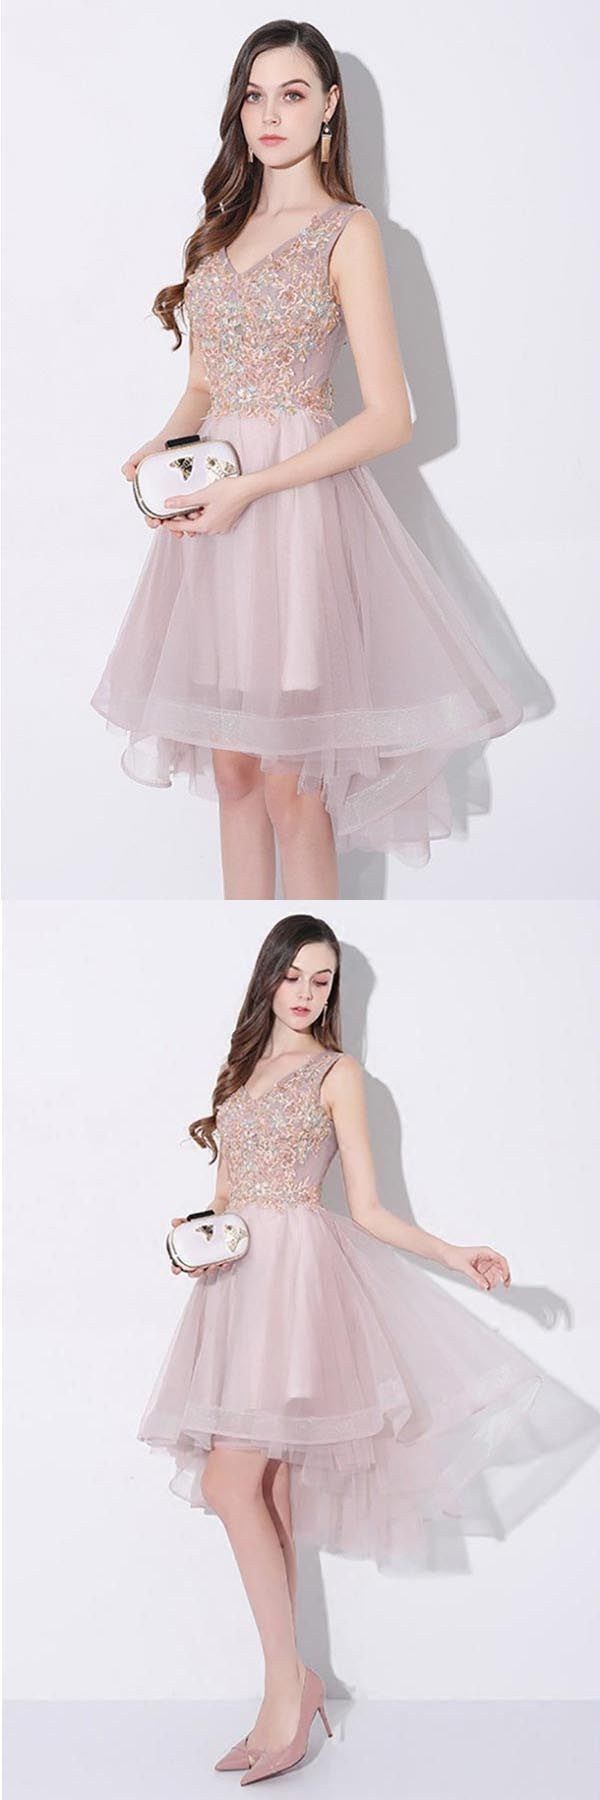 Tulle high low vneck homecoming prom dress sleeveless pd prom